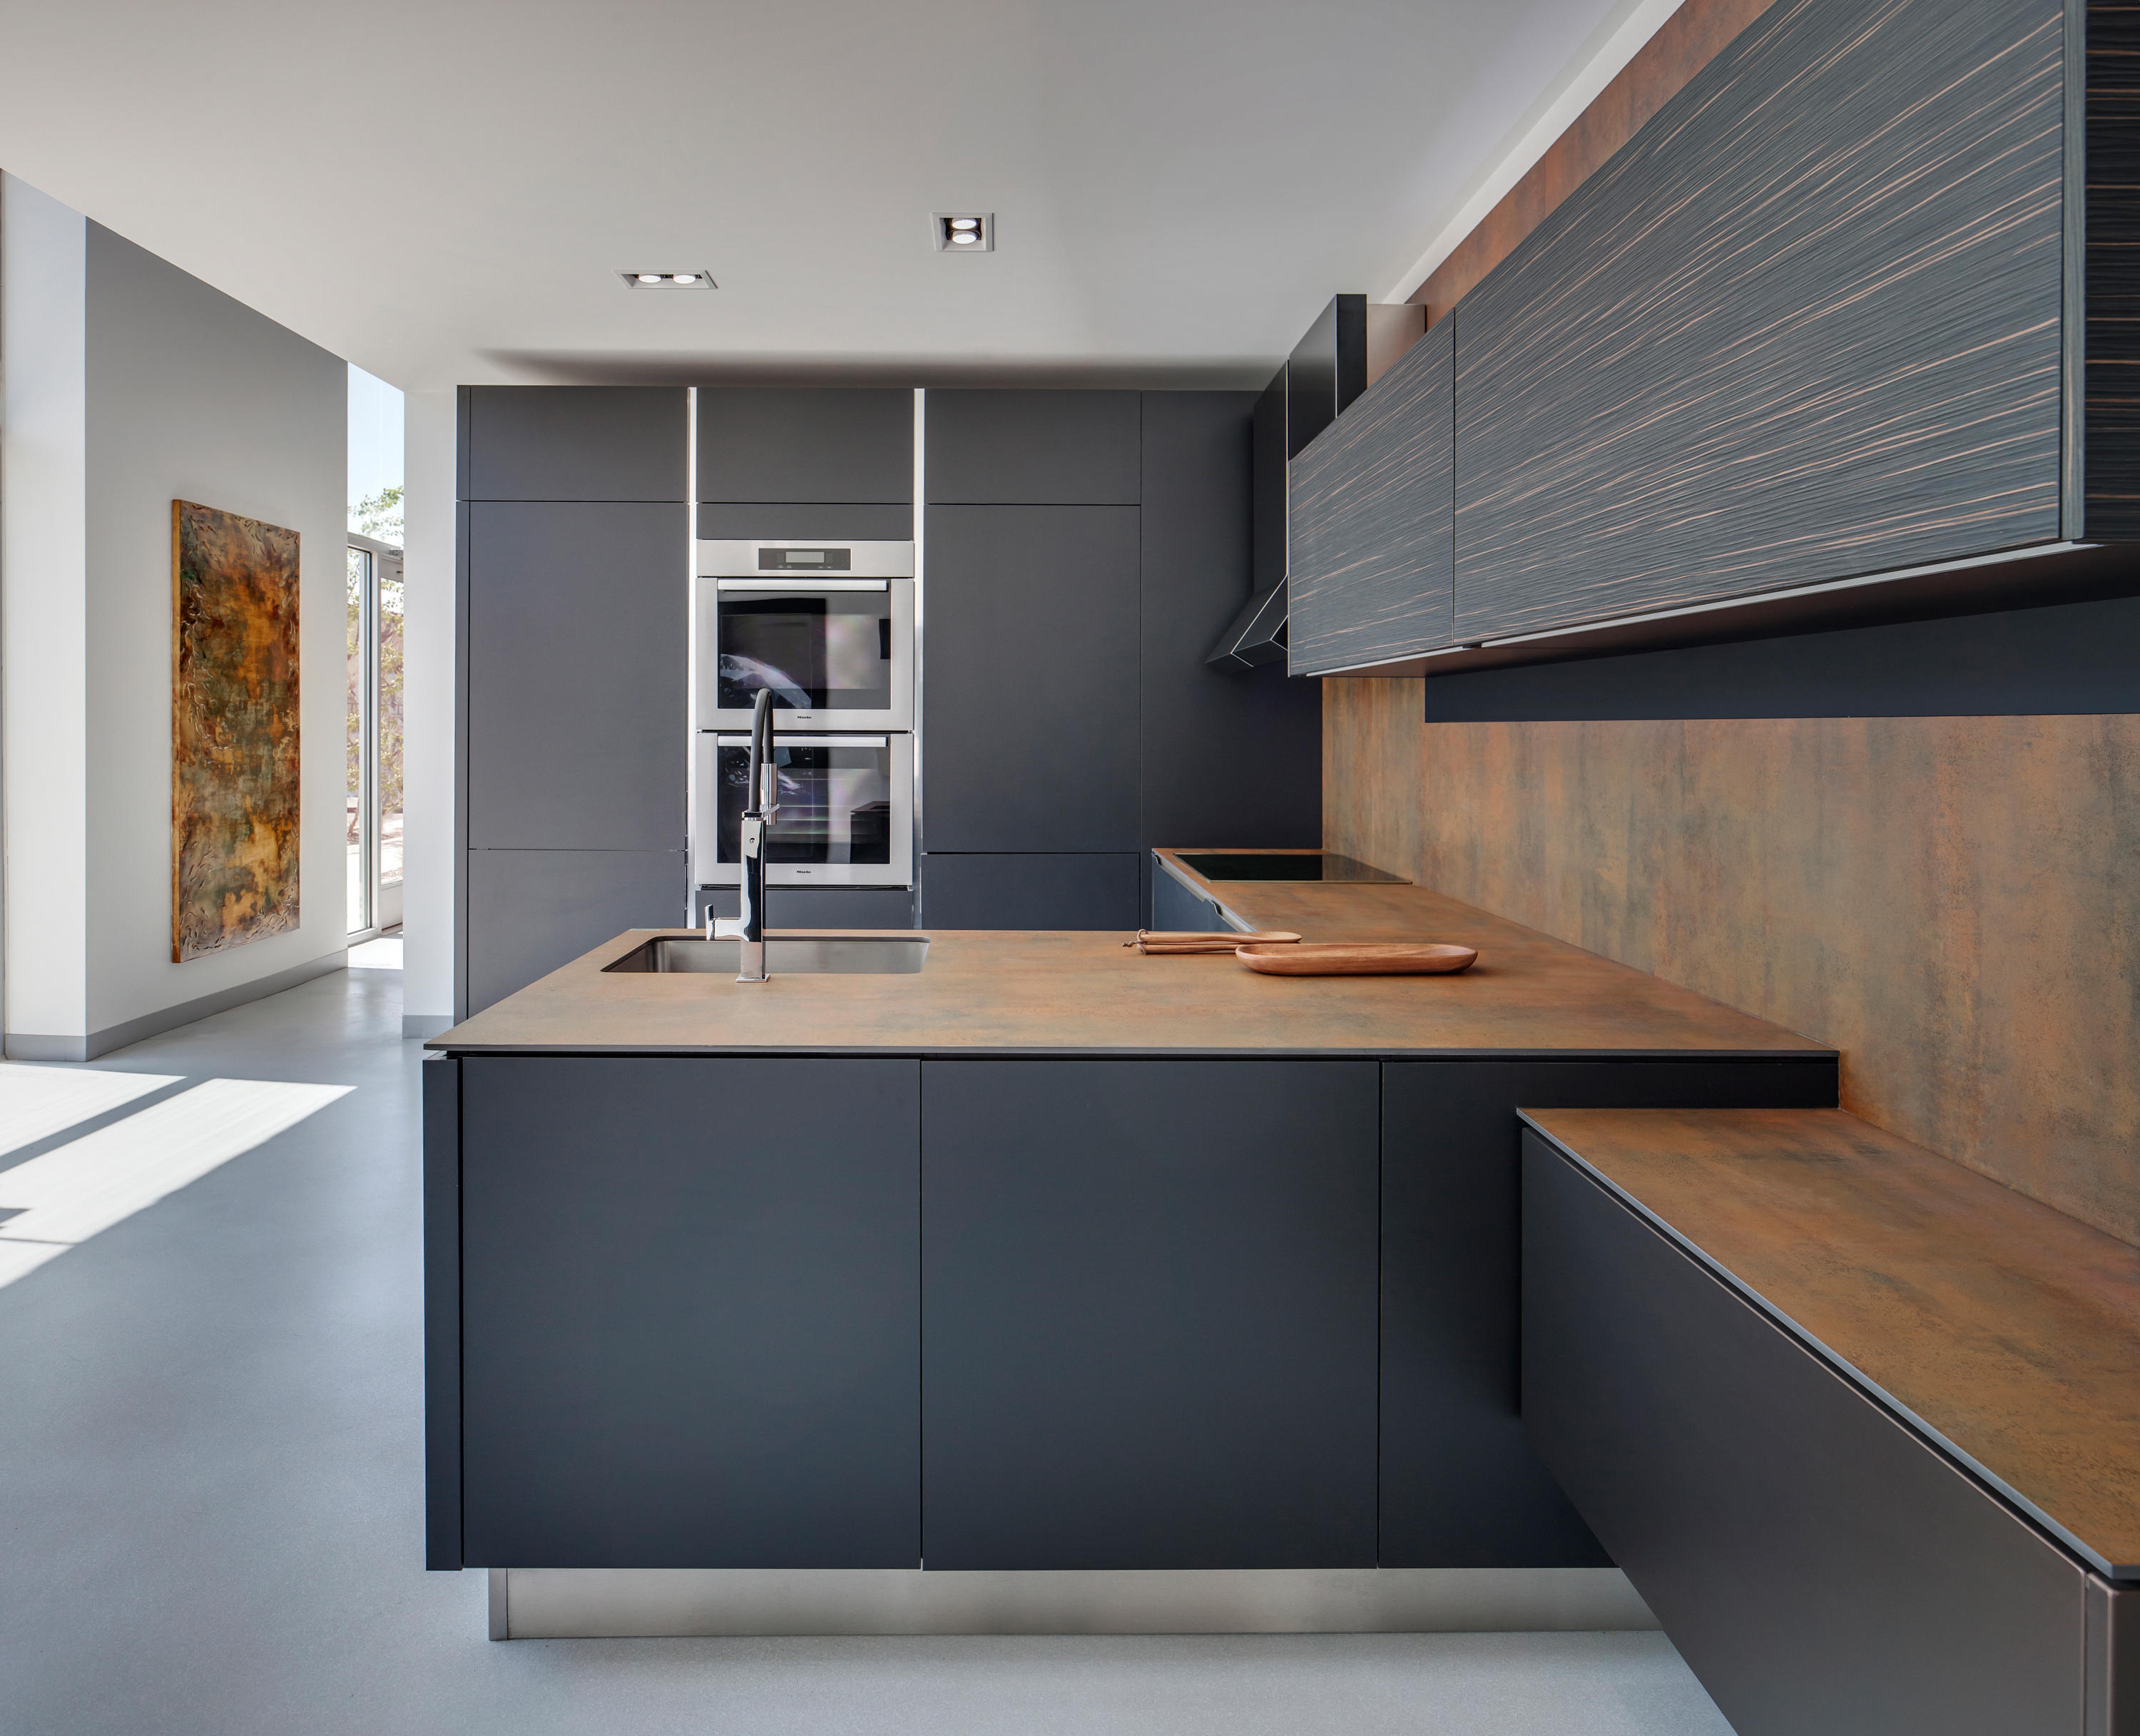 Kitchen Iron Corten Ceramic Tiles From Neolith